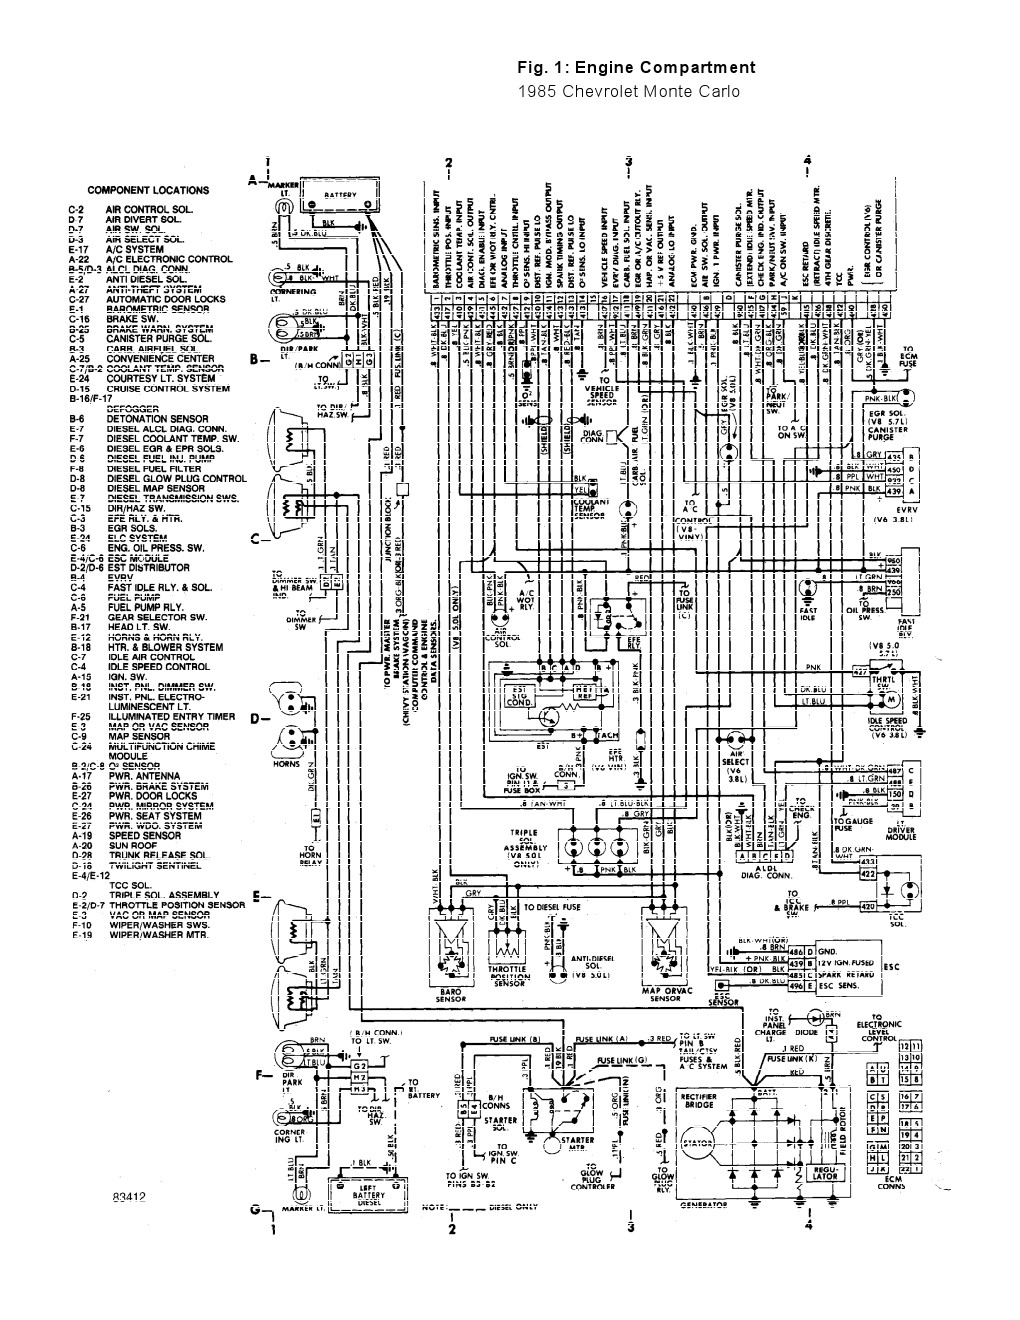 ac wiring diagram 1995 monte carlo wiring diagrams u20222001 chevy monte carlo engine diagram wiring [ 1020 x 1320 Pixel ]